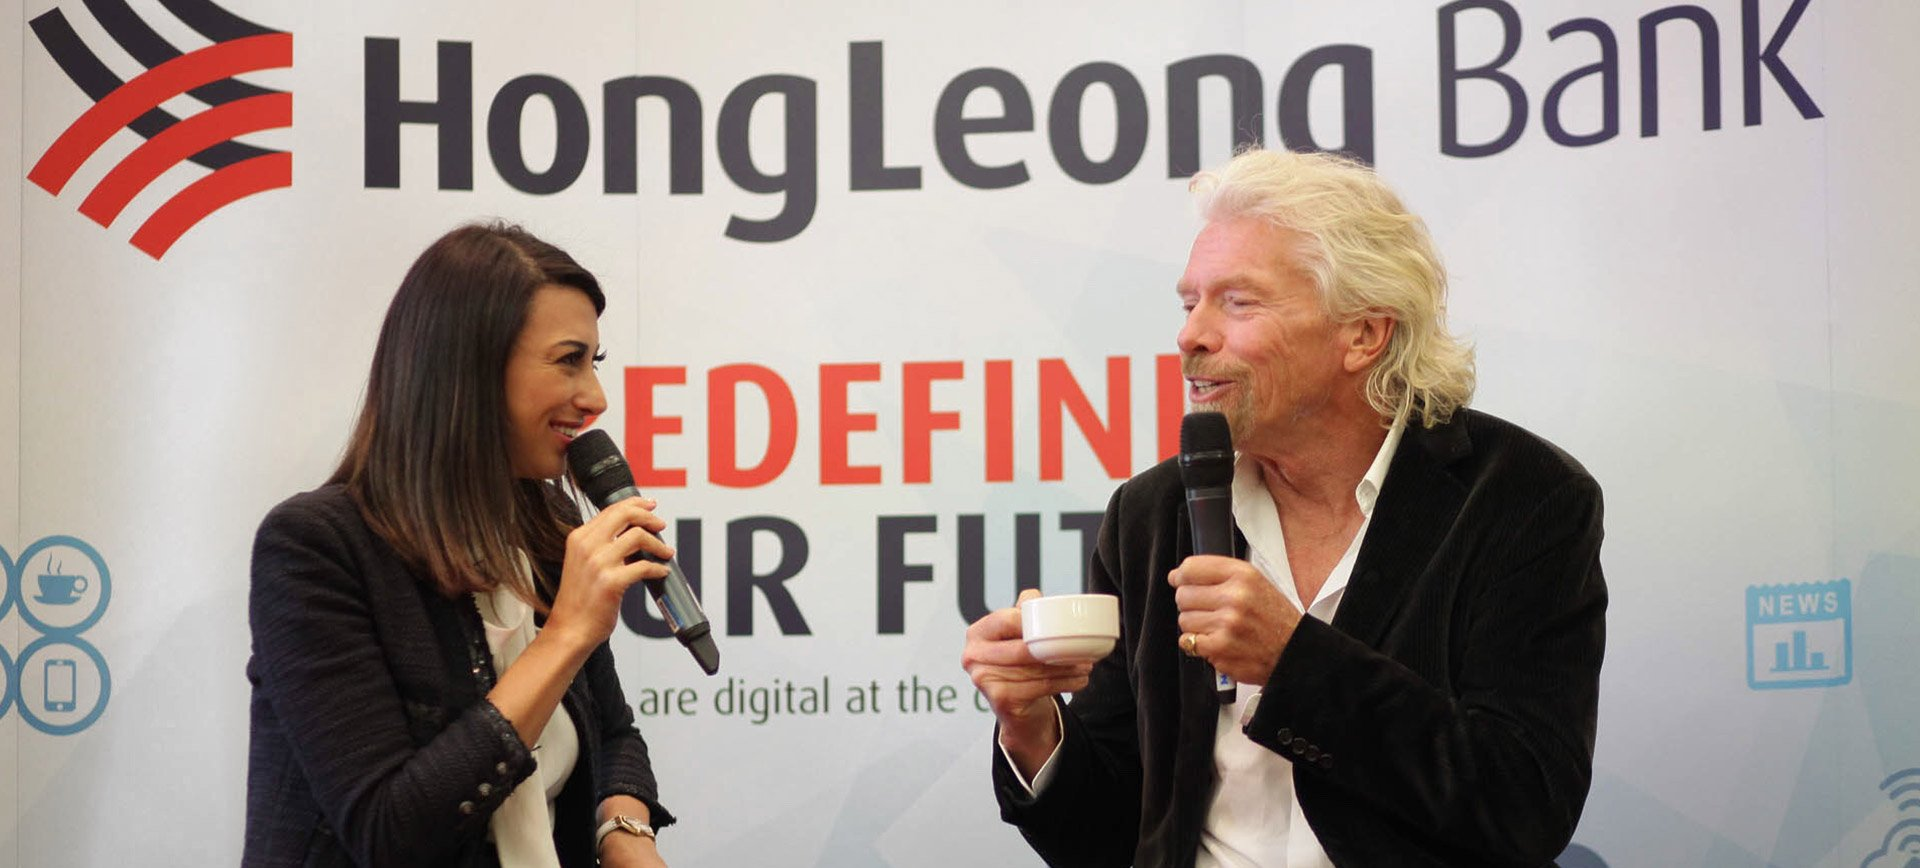 8 things I learned from Richard Branson